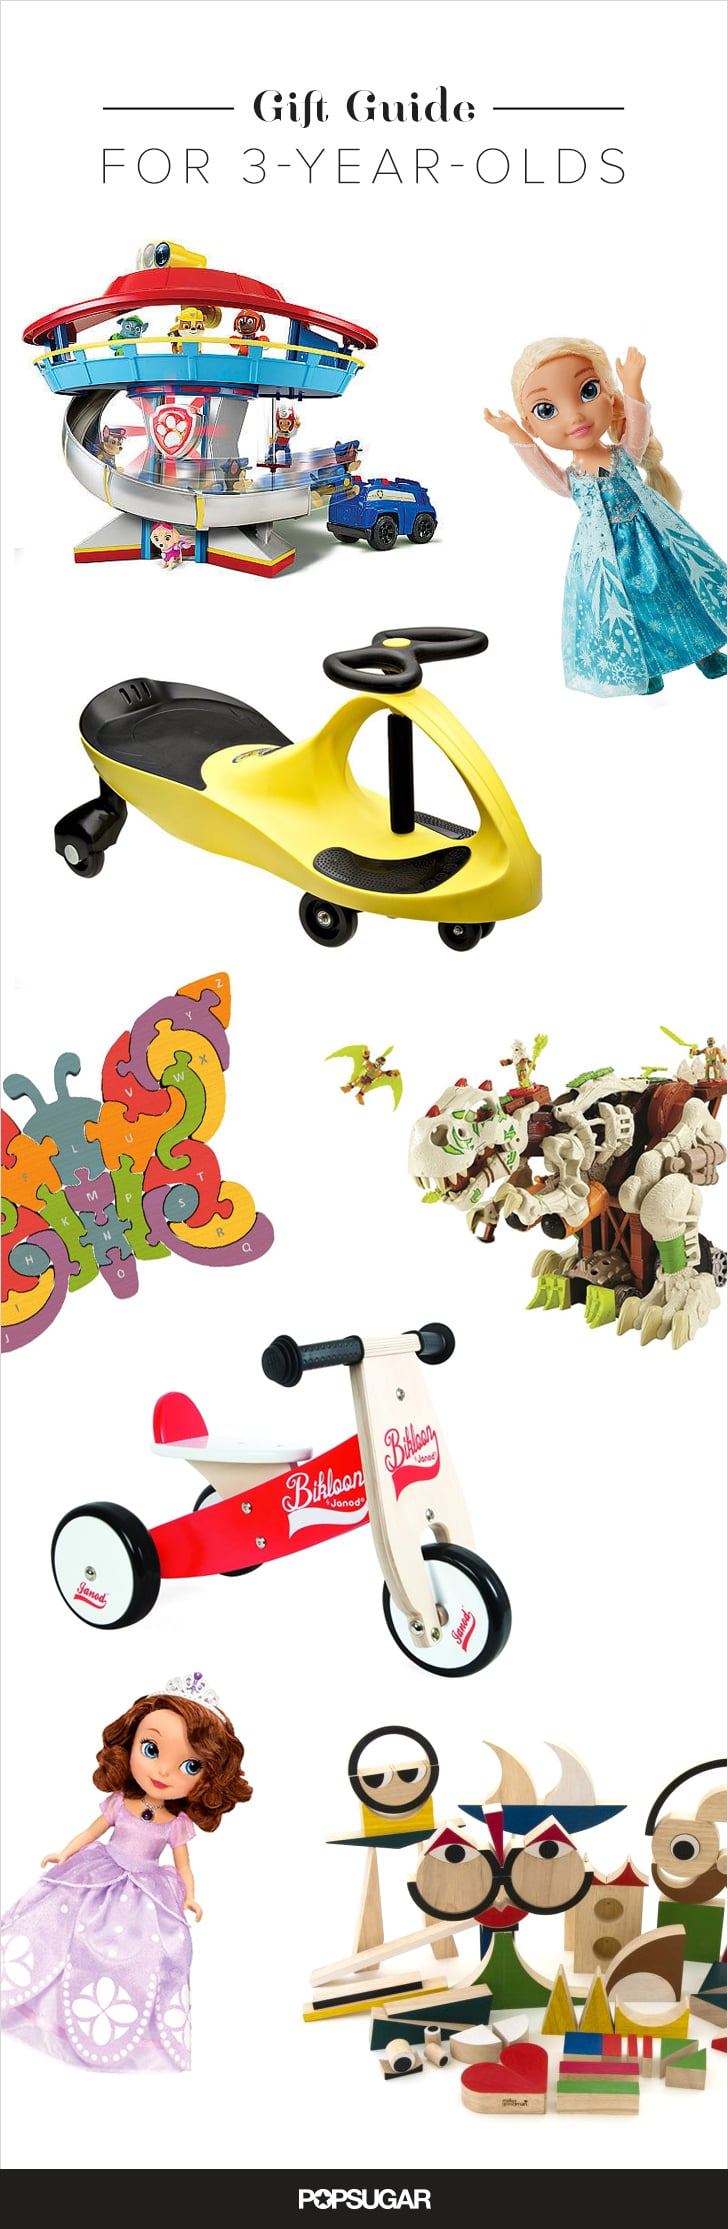 The Best Gifts For 3-Year-Olds